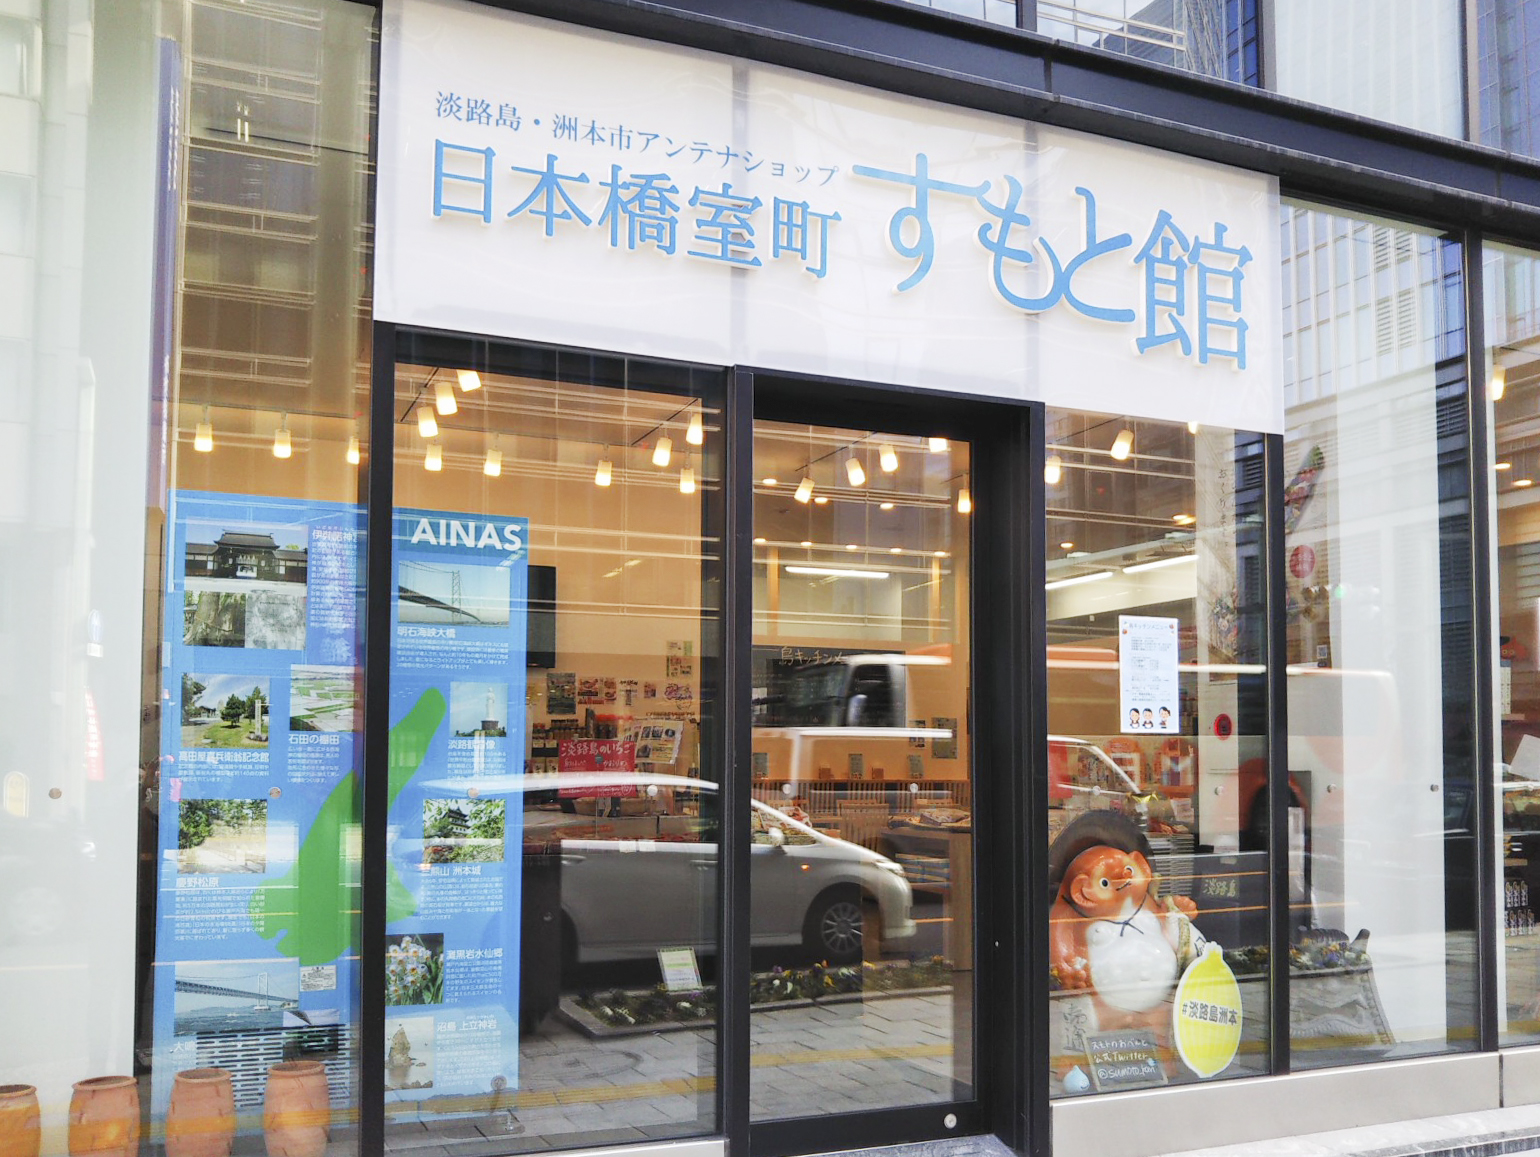 Now GOTCAN launched at Nihonbashi Muromachi SUMOTO-KAN in TOKYO